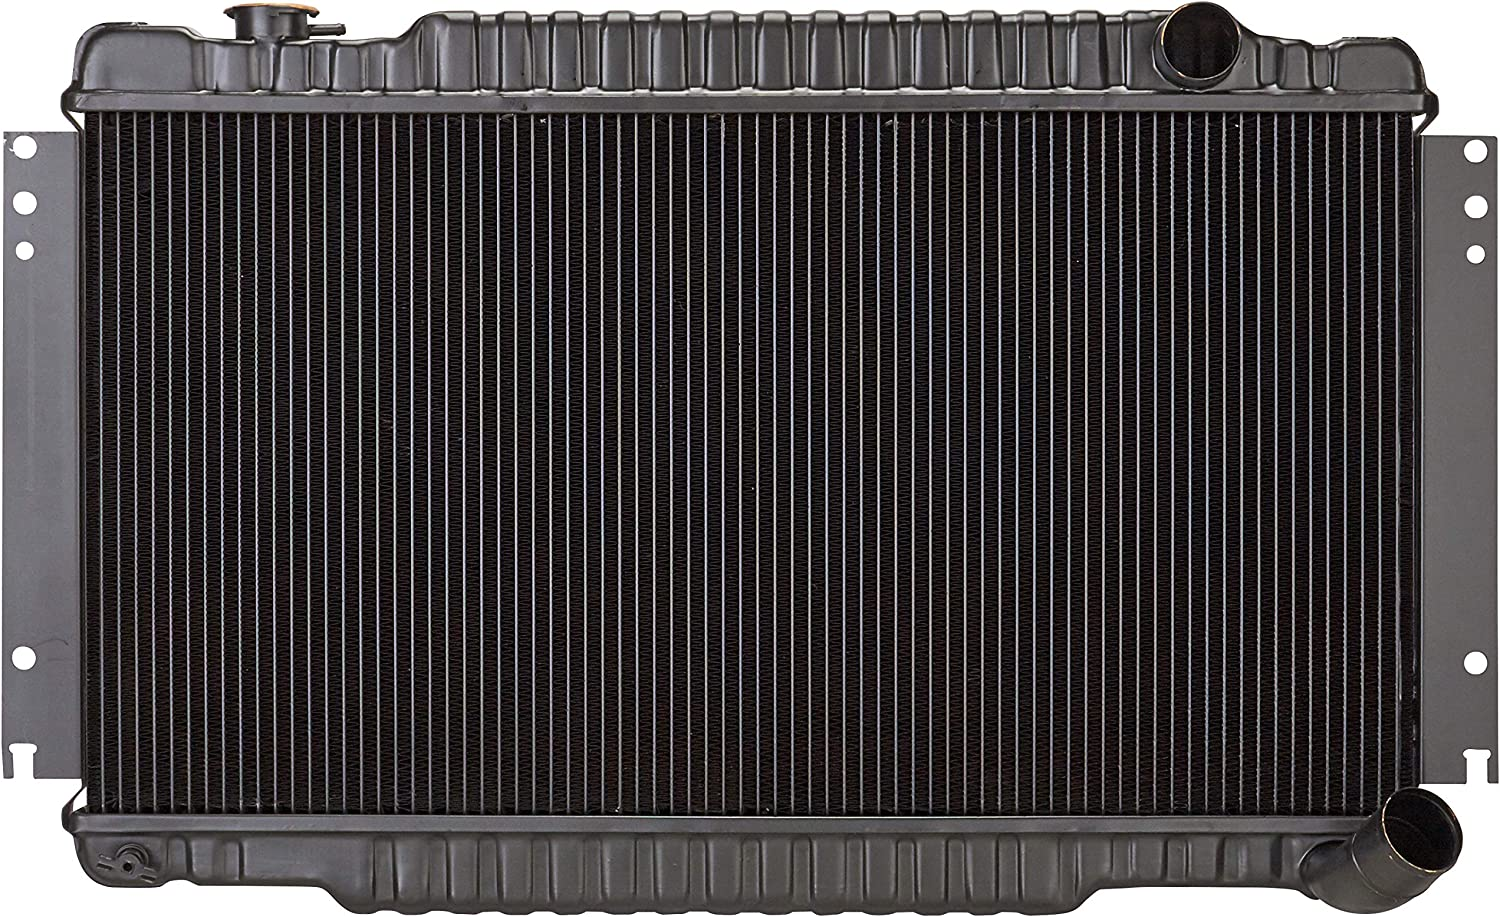 Max 80% Free Shipping Cheap Bargain Gift OFF Spectra Complete CU1079 Radiator